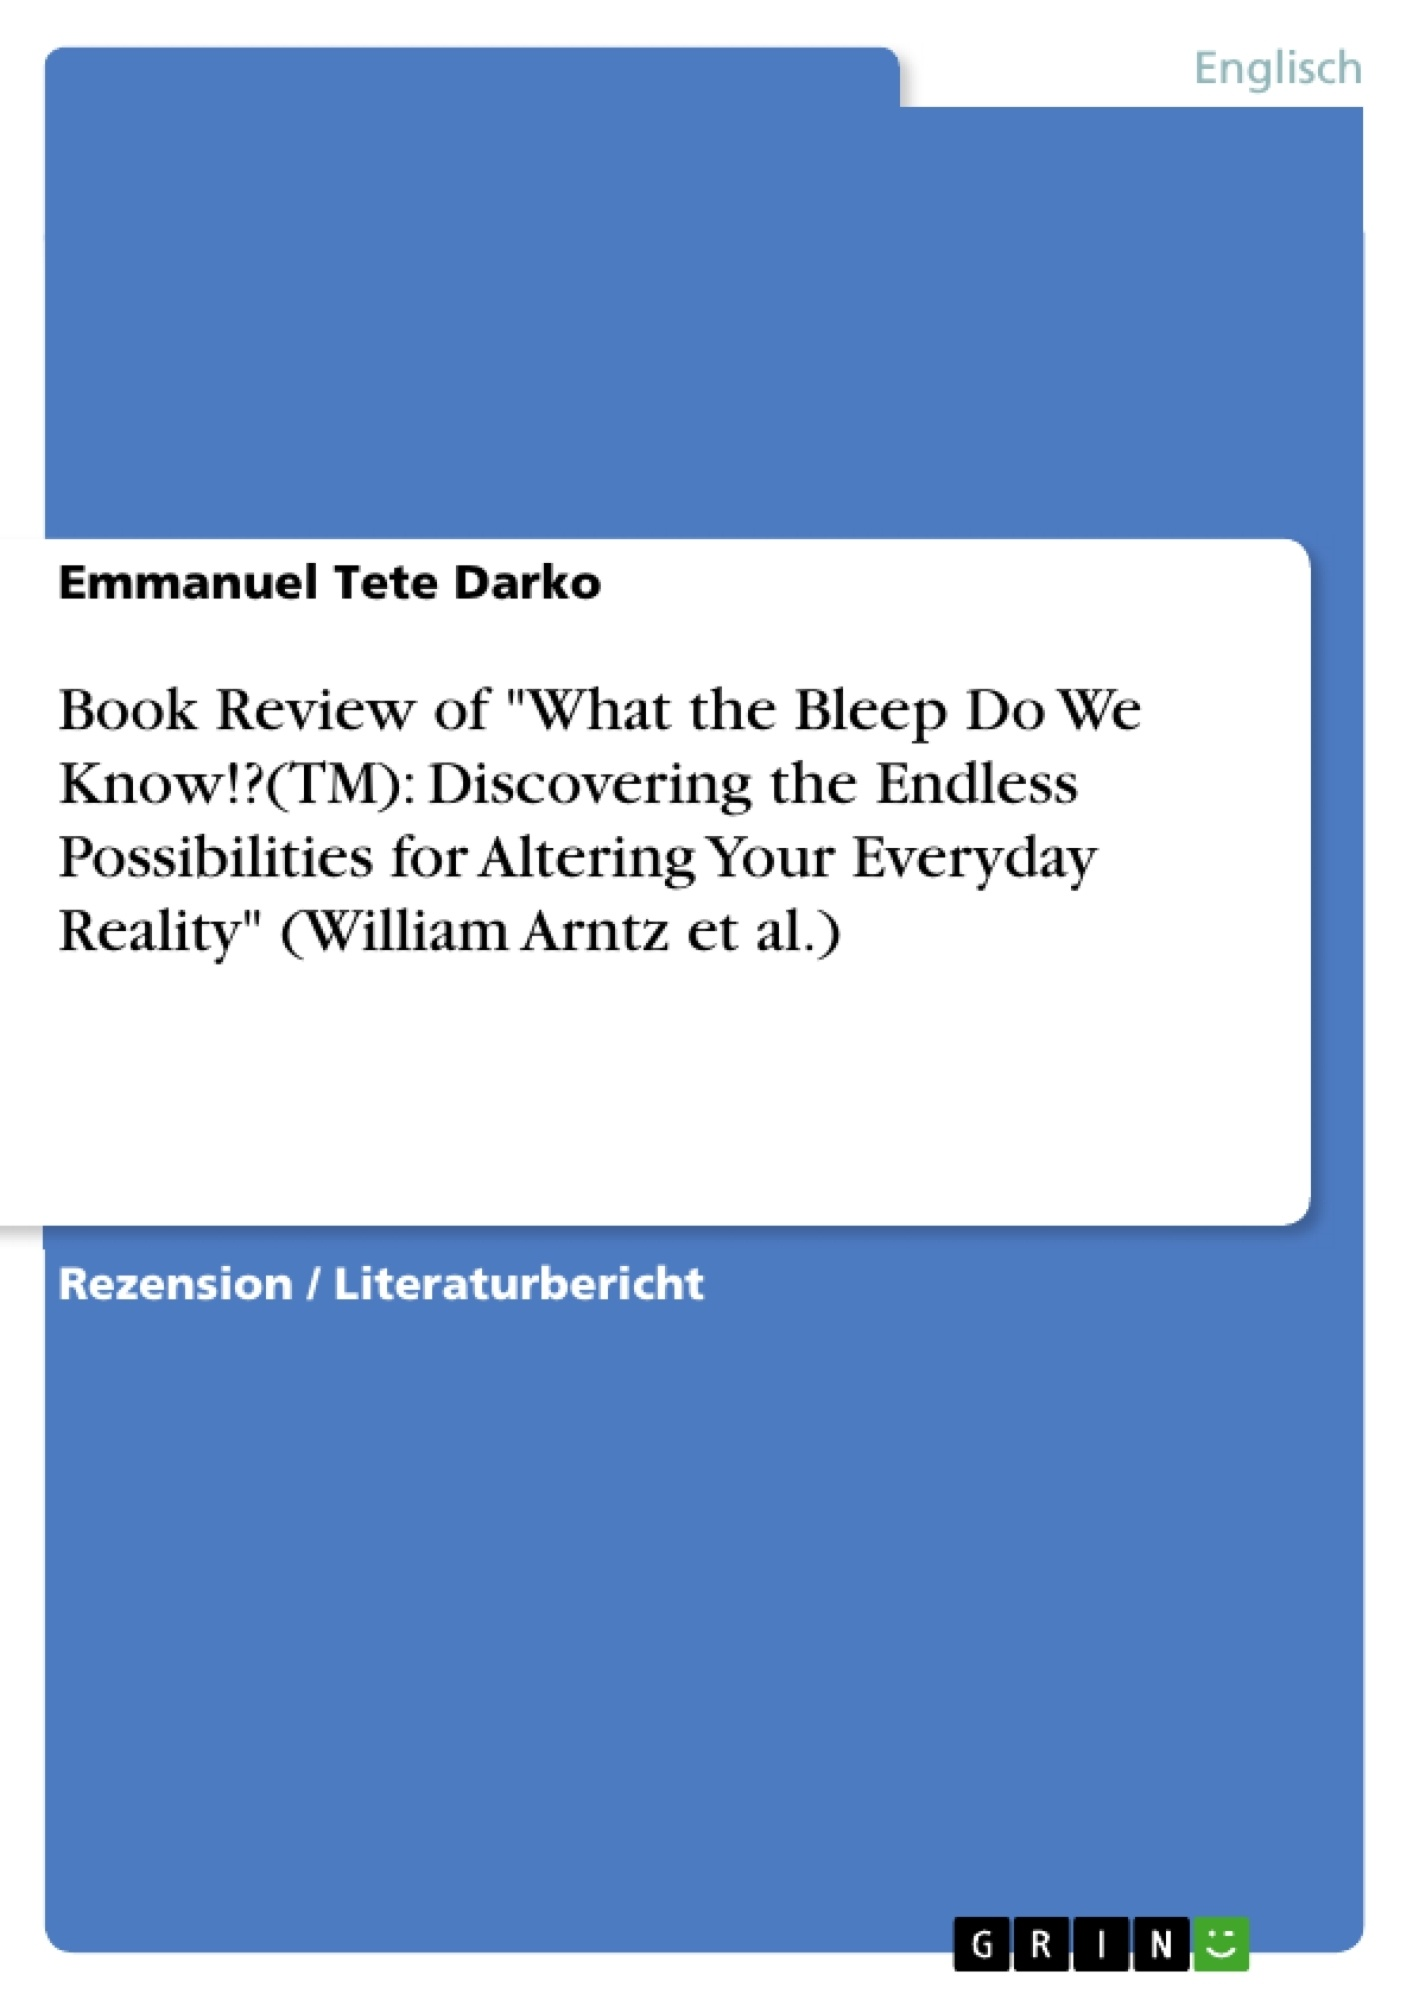 """Titel: Book Review of """"What the Bleep Do We Know!?(TM): Discovering the Endless Possibilities for Altering Your Everyday Reality"""" (William Arntz et al.)"""